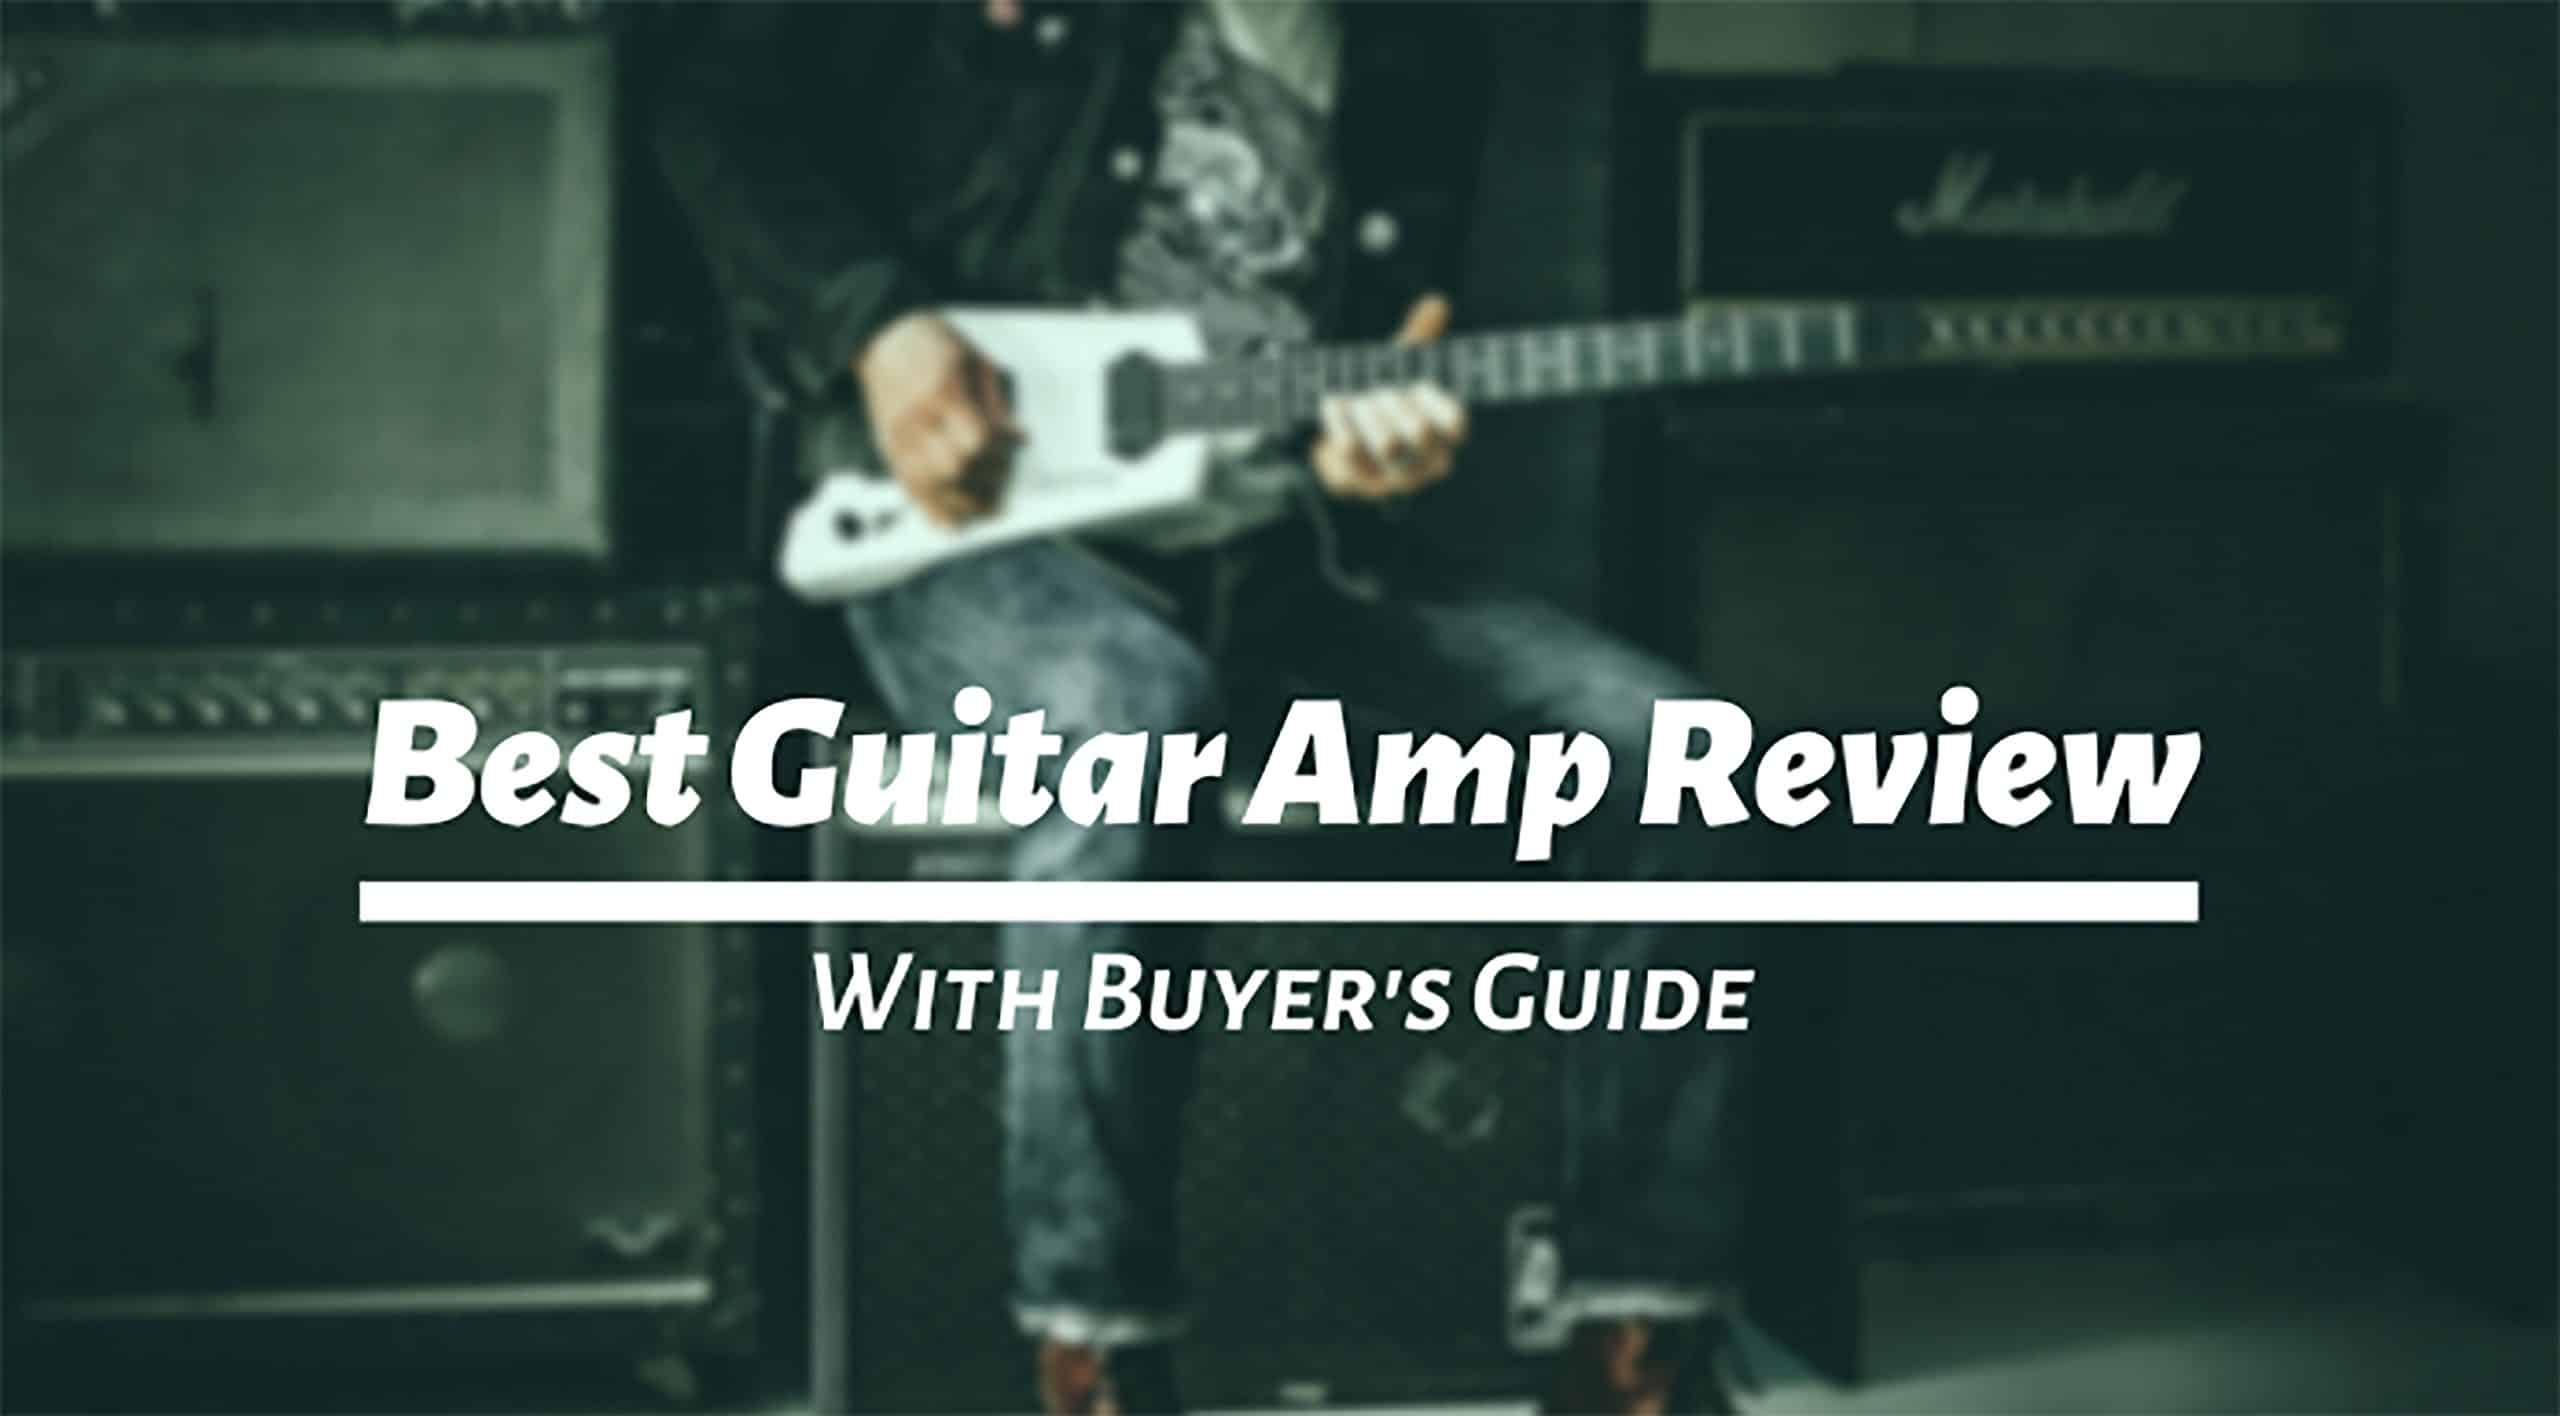 Best Guitar Amp Review for 2021 [In-Depth Buyer's Guide]